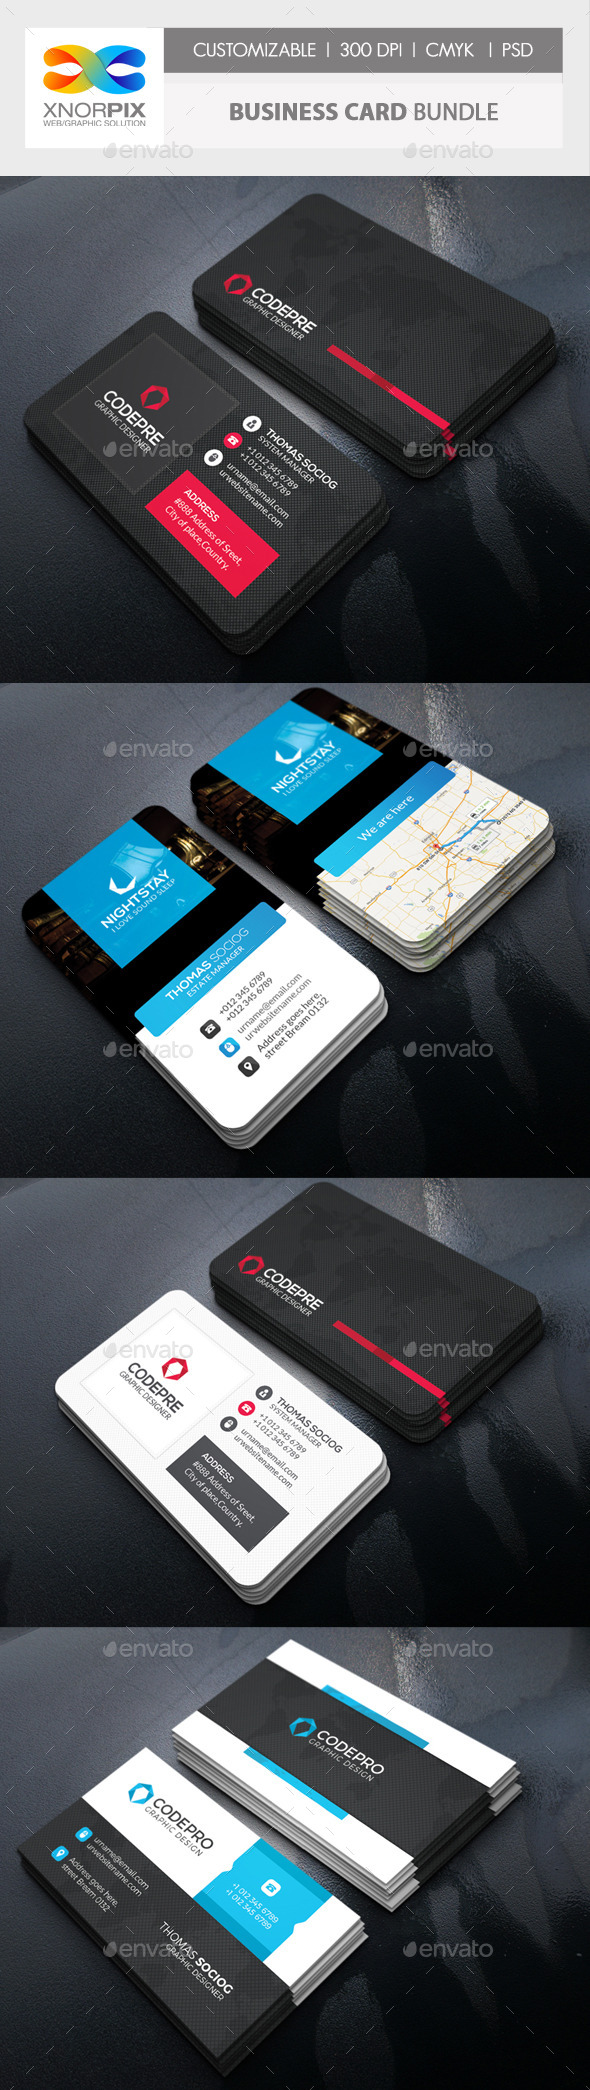 Business Card Bundle 3 in 1-Vol 62 - Corporate Business Cards